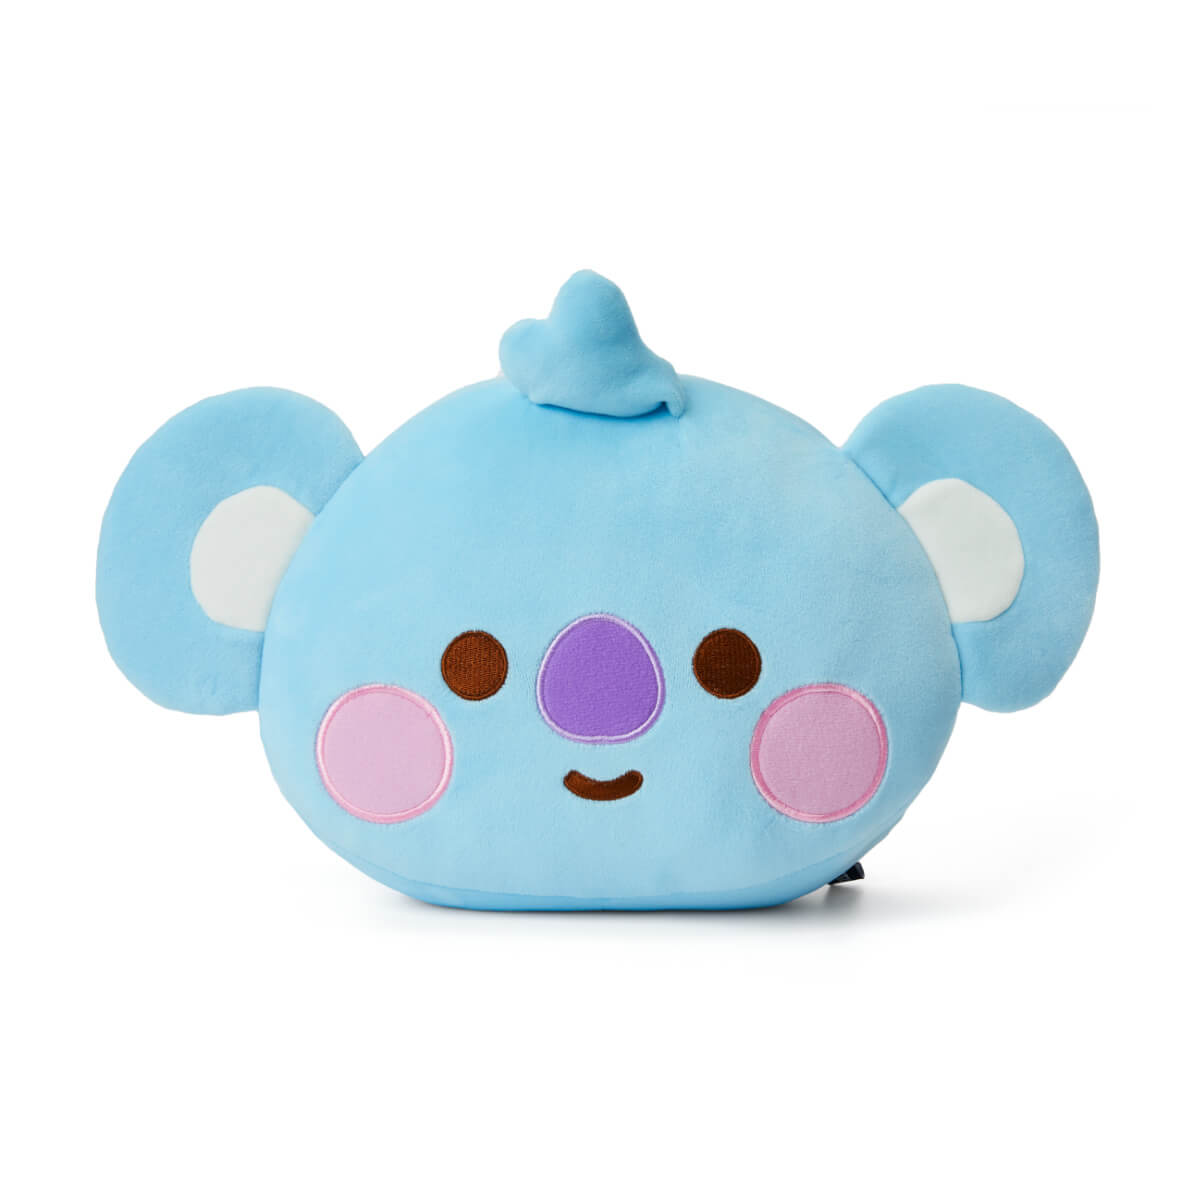 BT21 KOYA BABY Hand Warmer Cushion